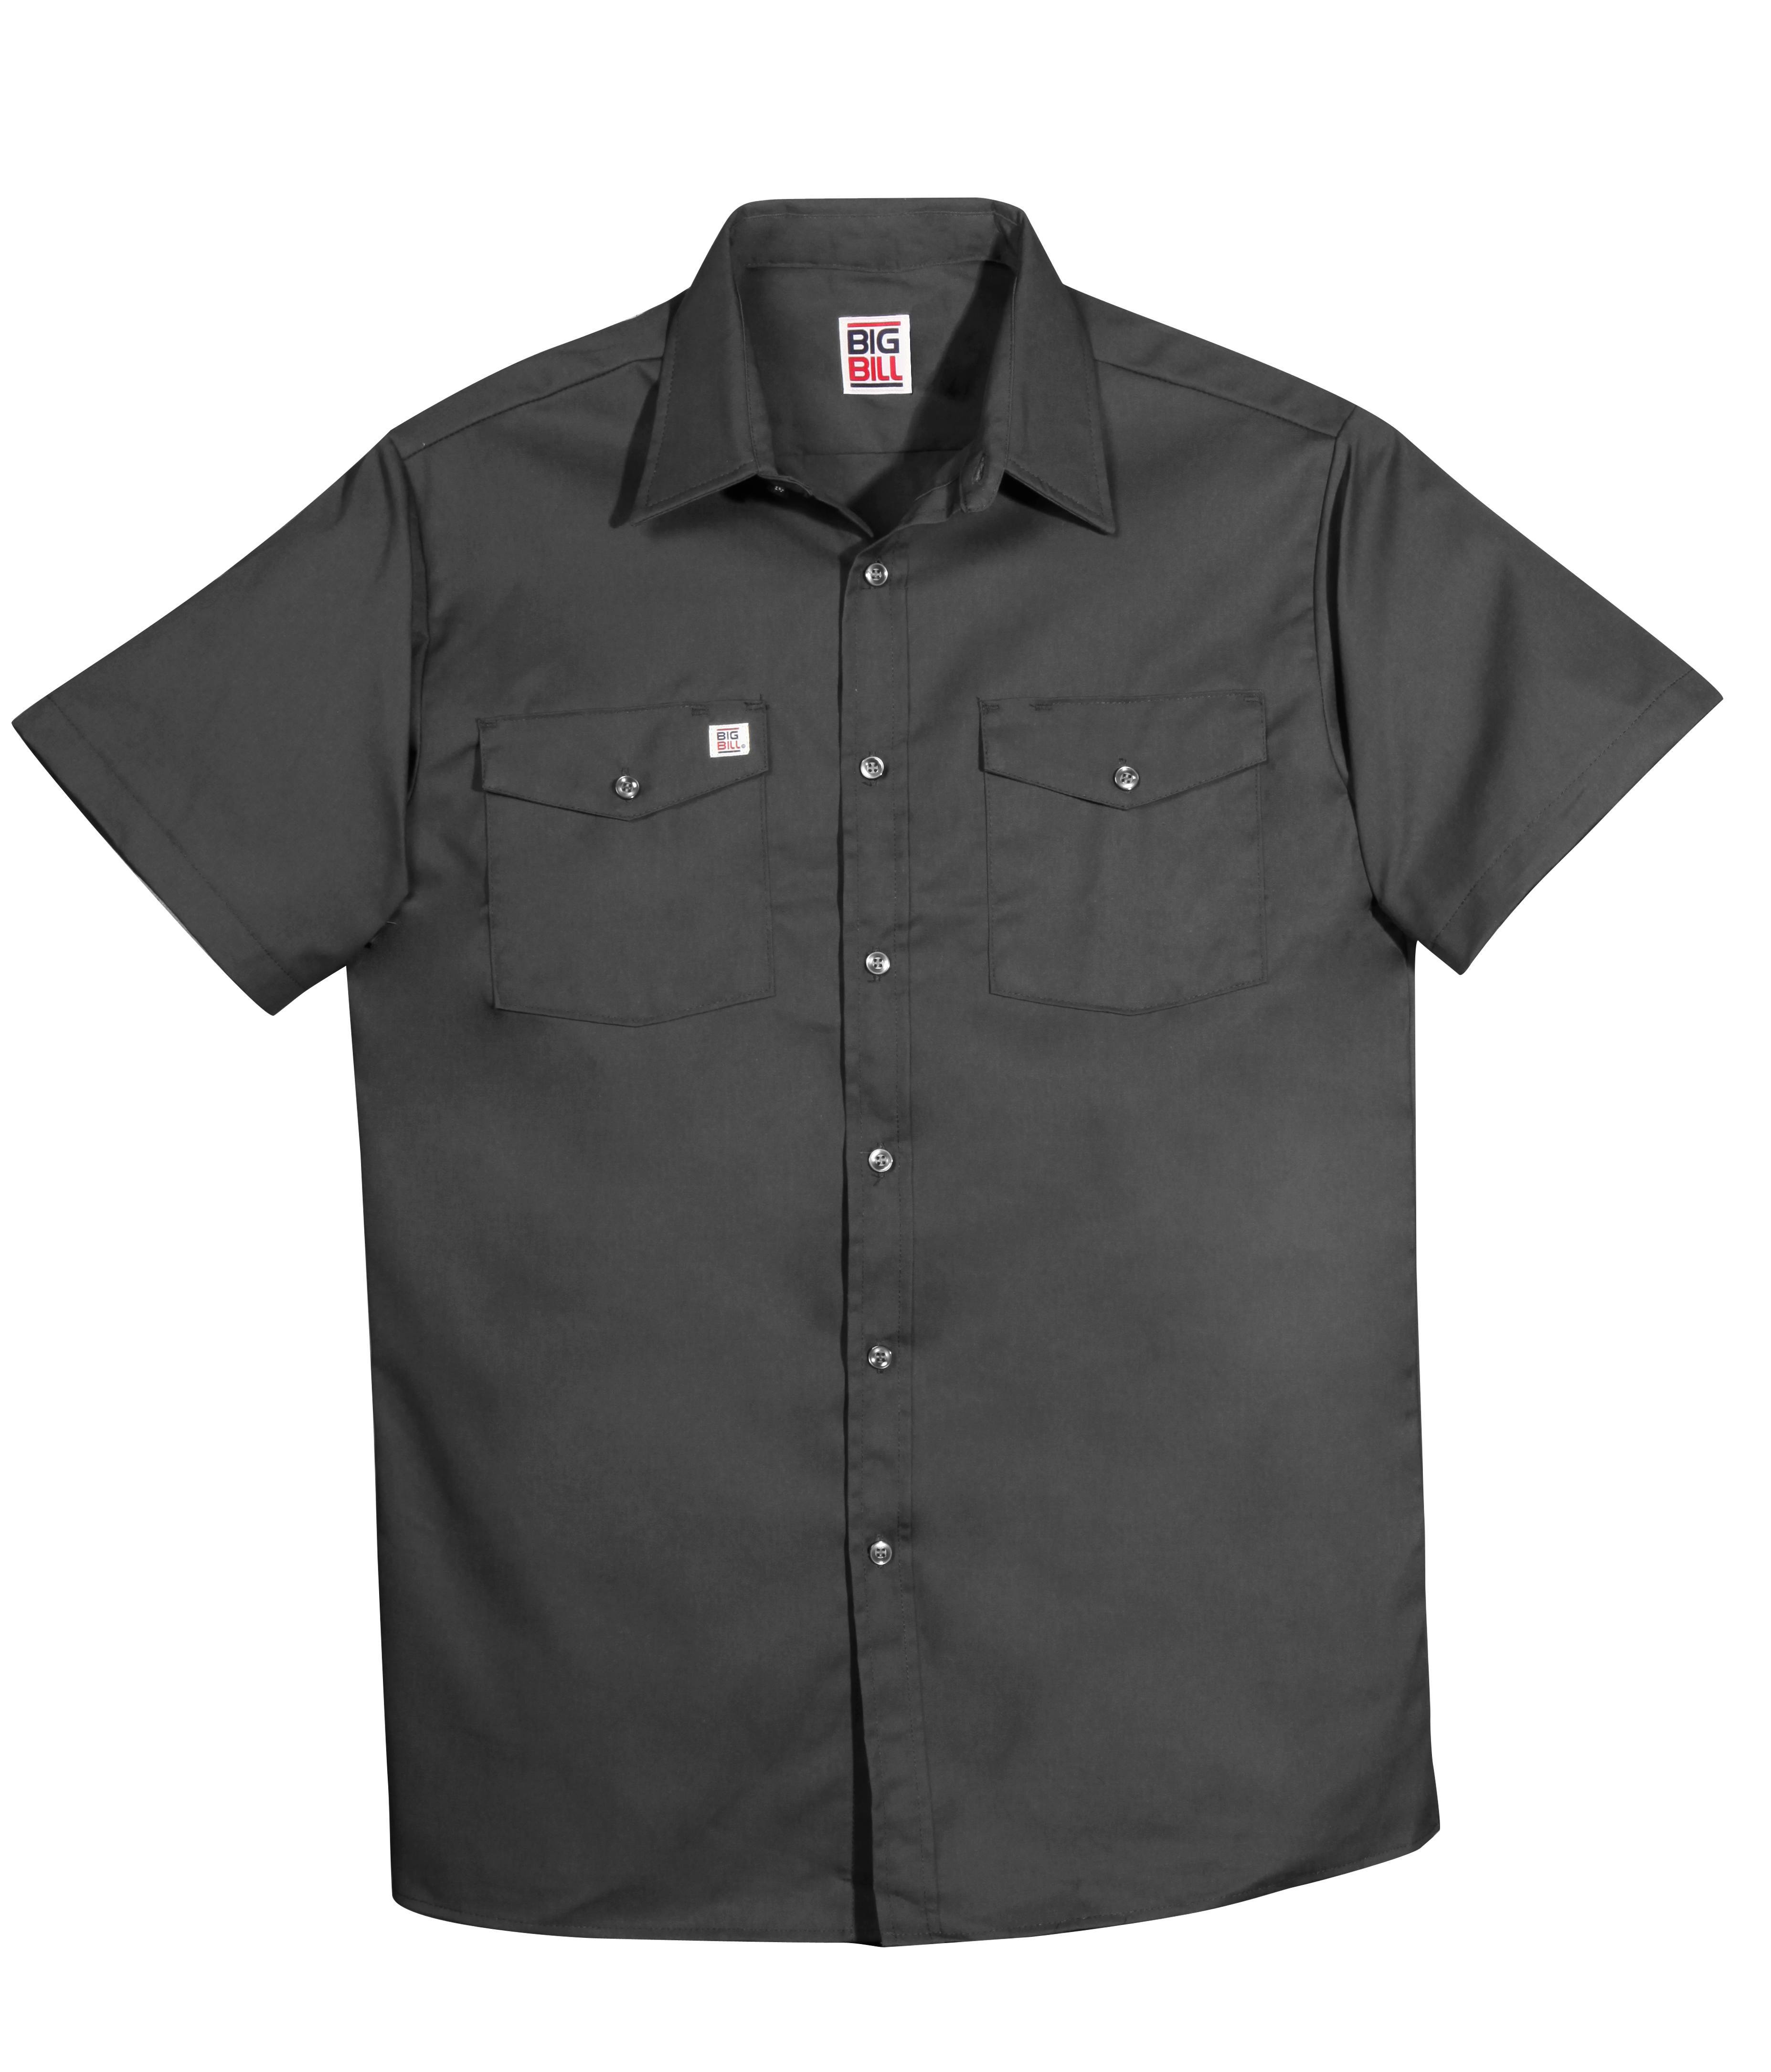 6 oz Twill Button Up Short Sleeve Work Shirt-BIG BILL